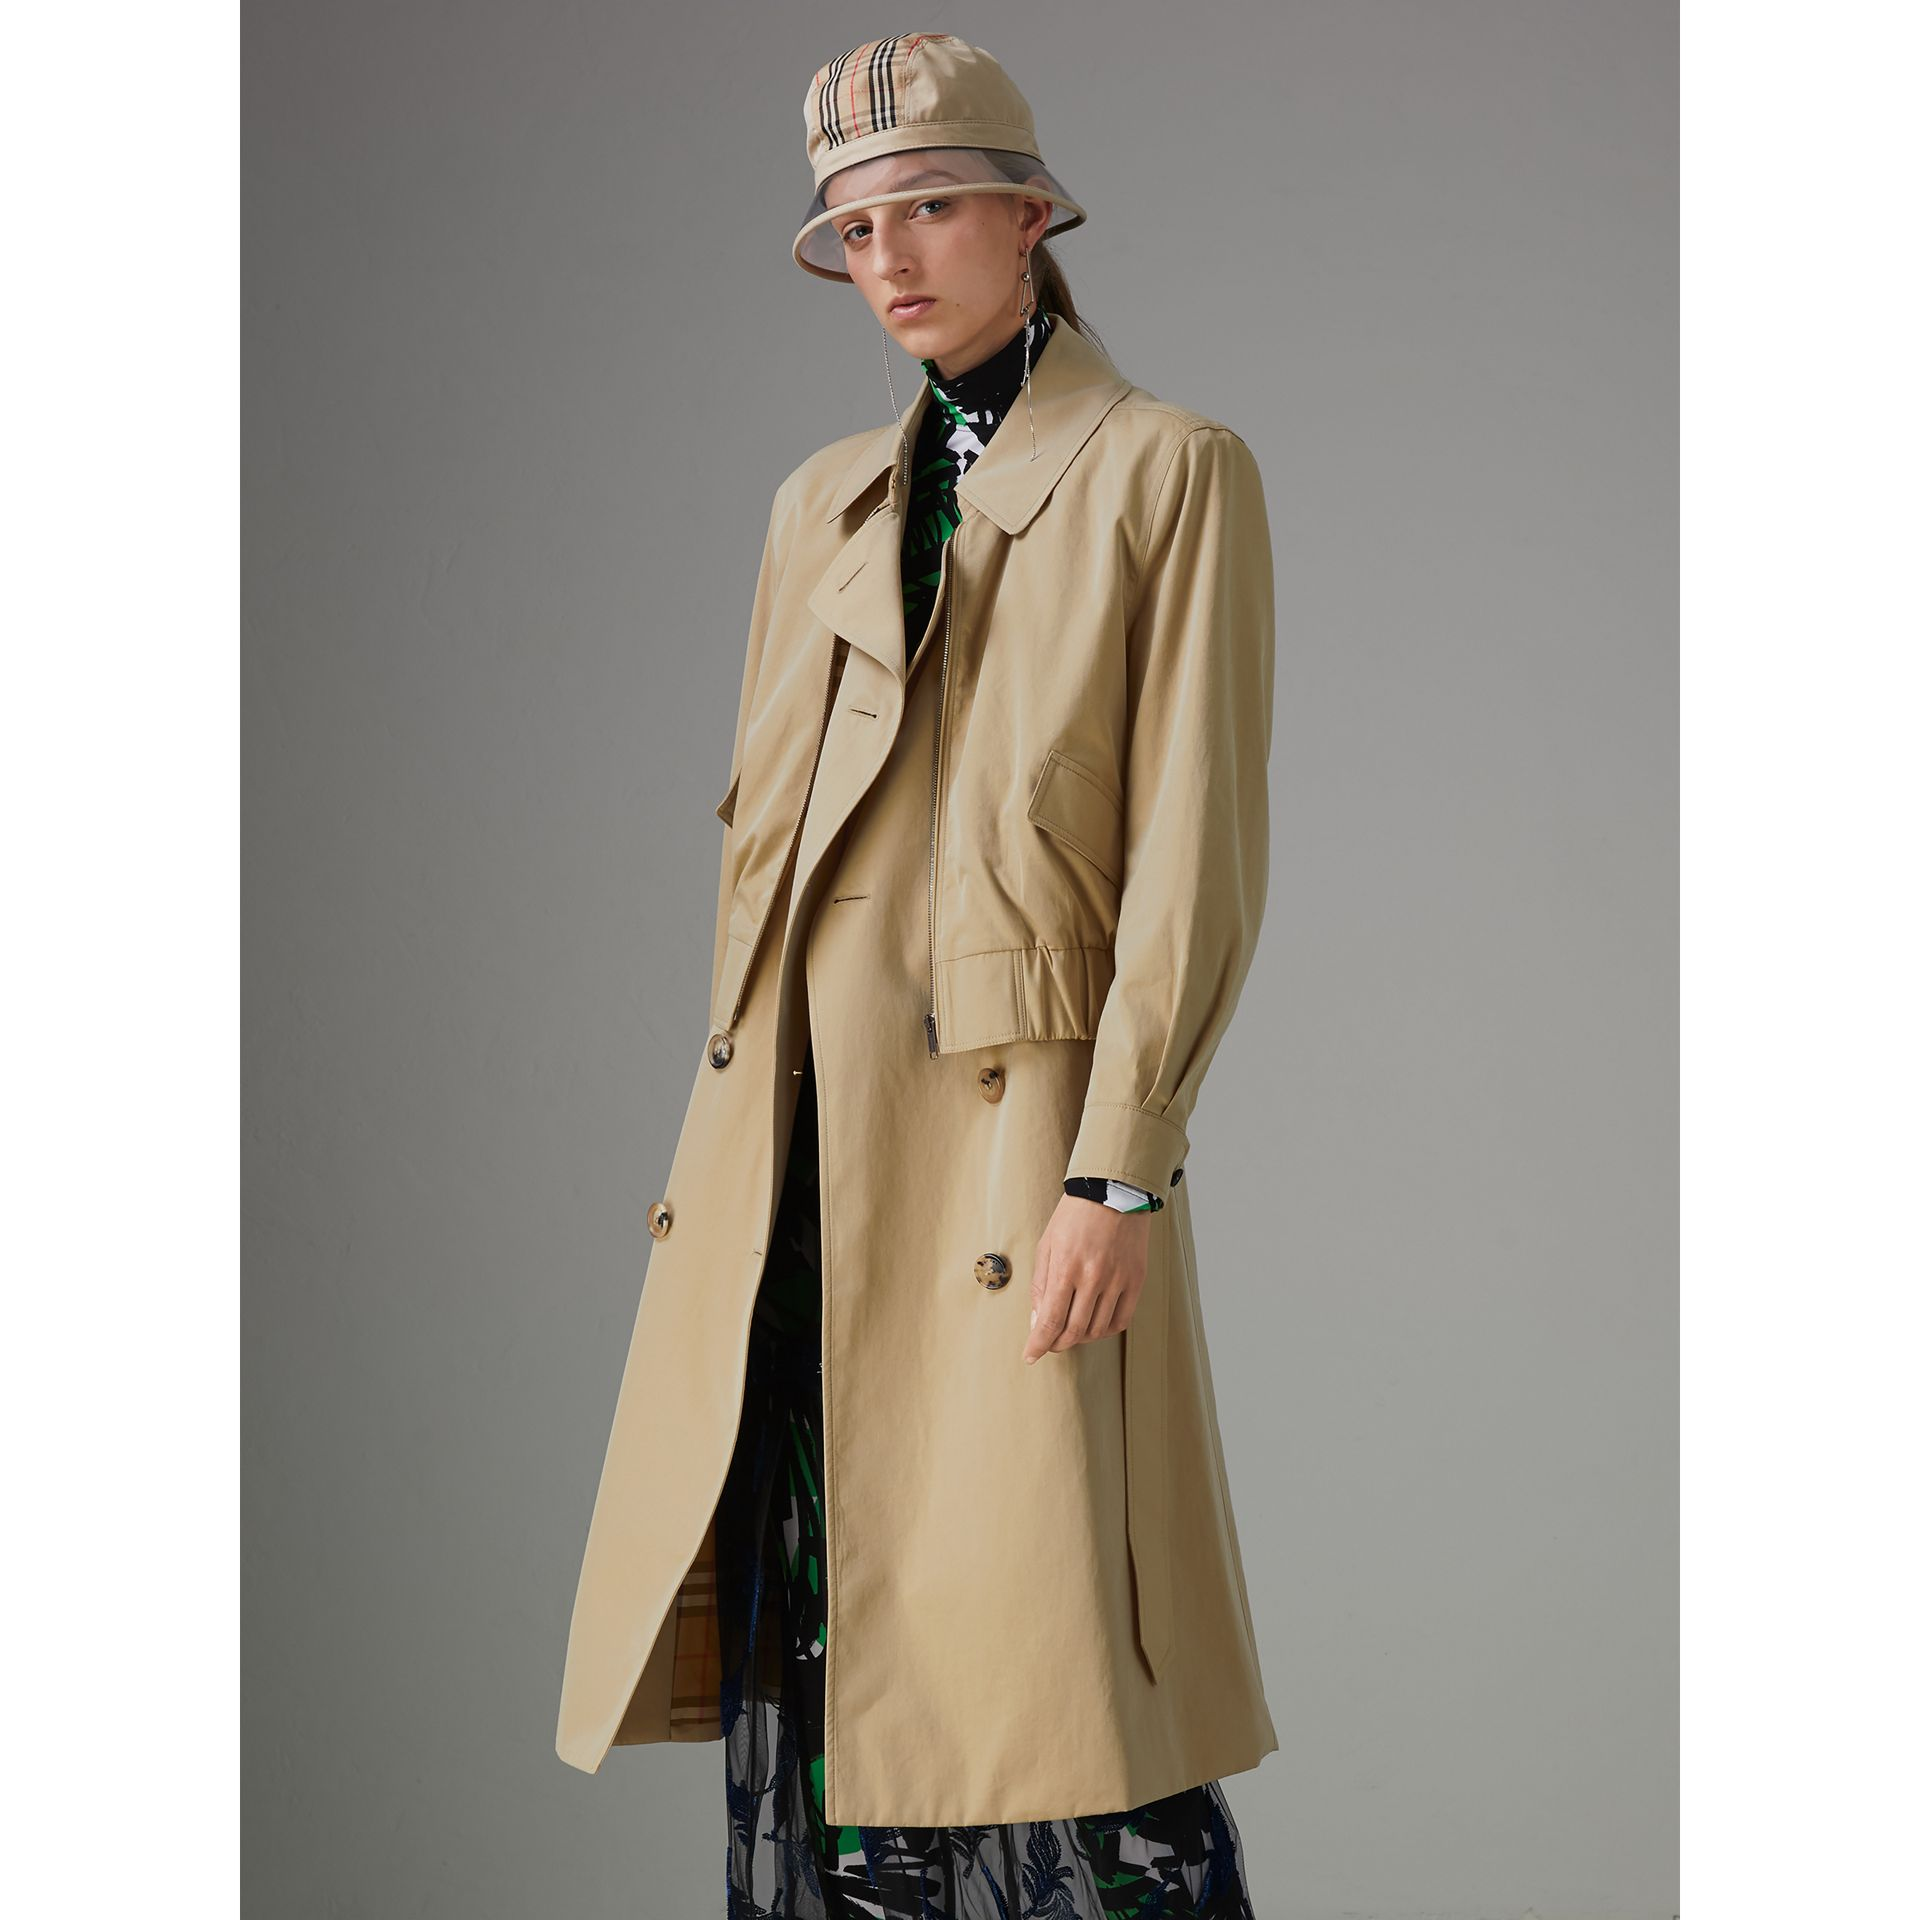 Trench Harrington reconstitué en gabardine tropicale (Miel) - Femme | Burberry - photo de la galerie 5